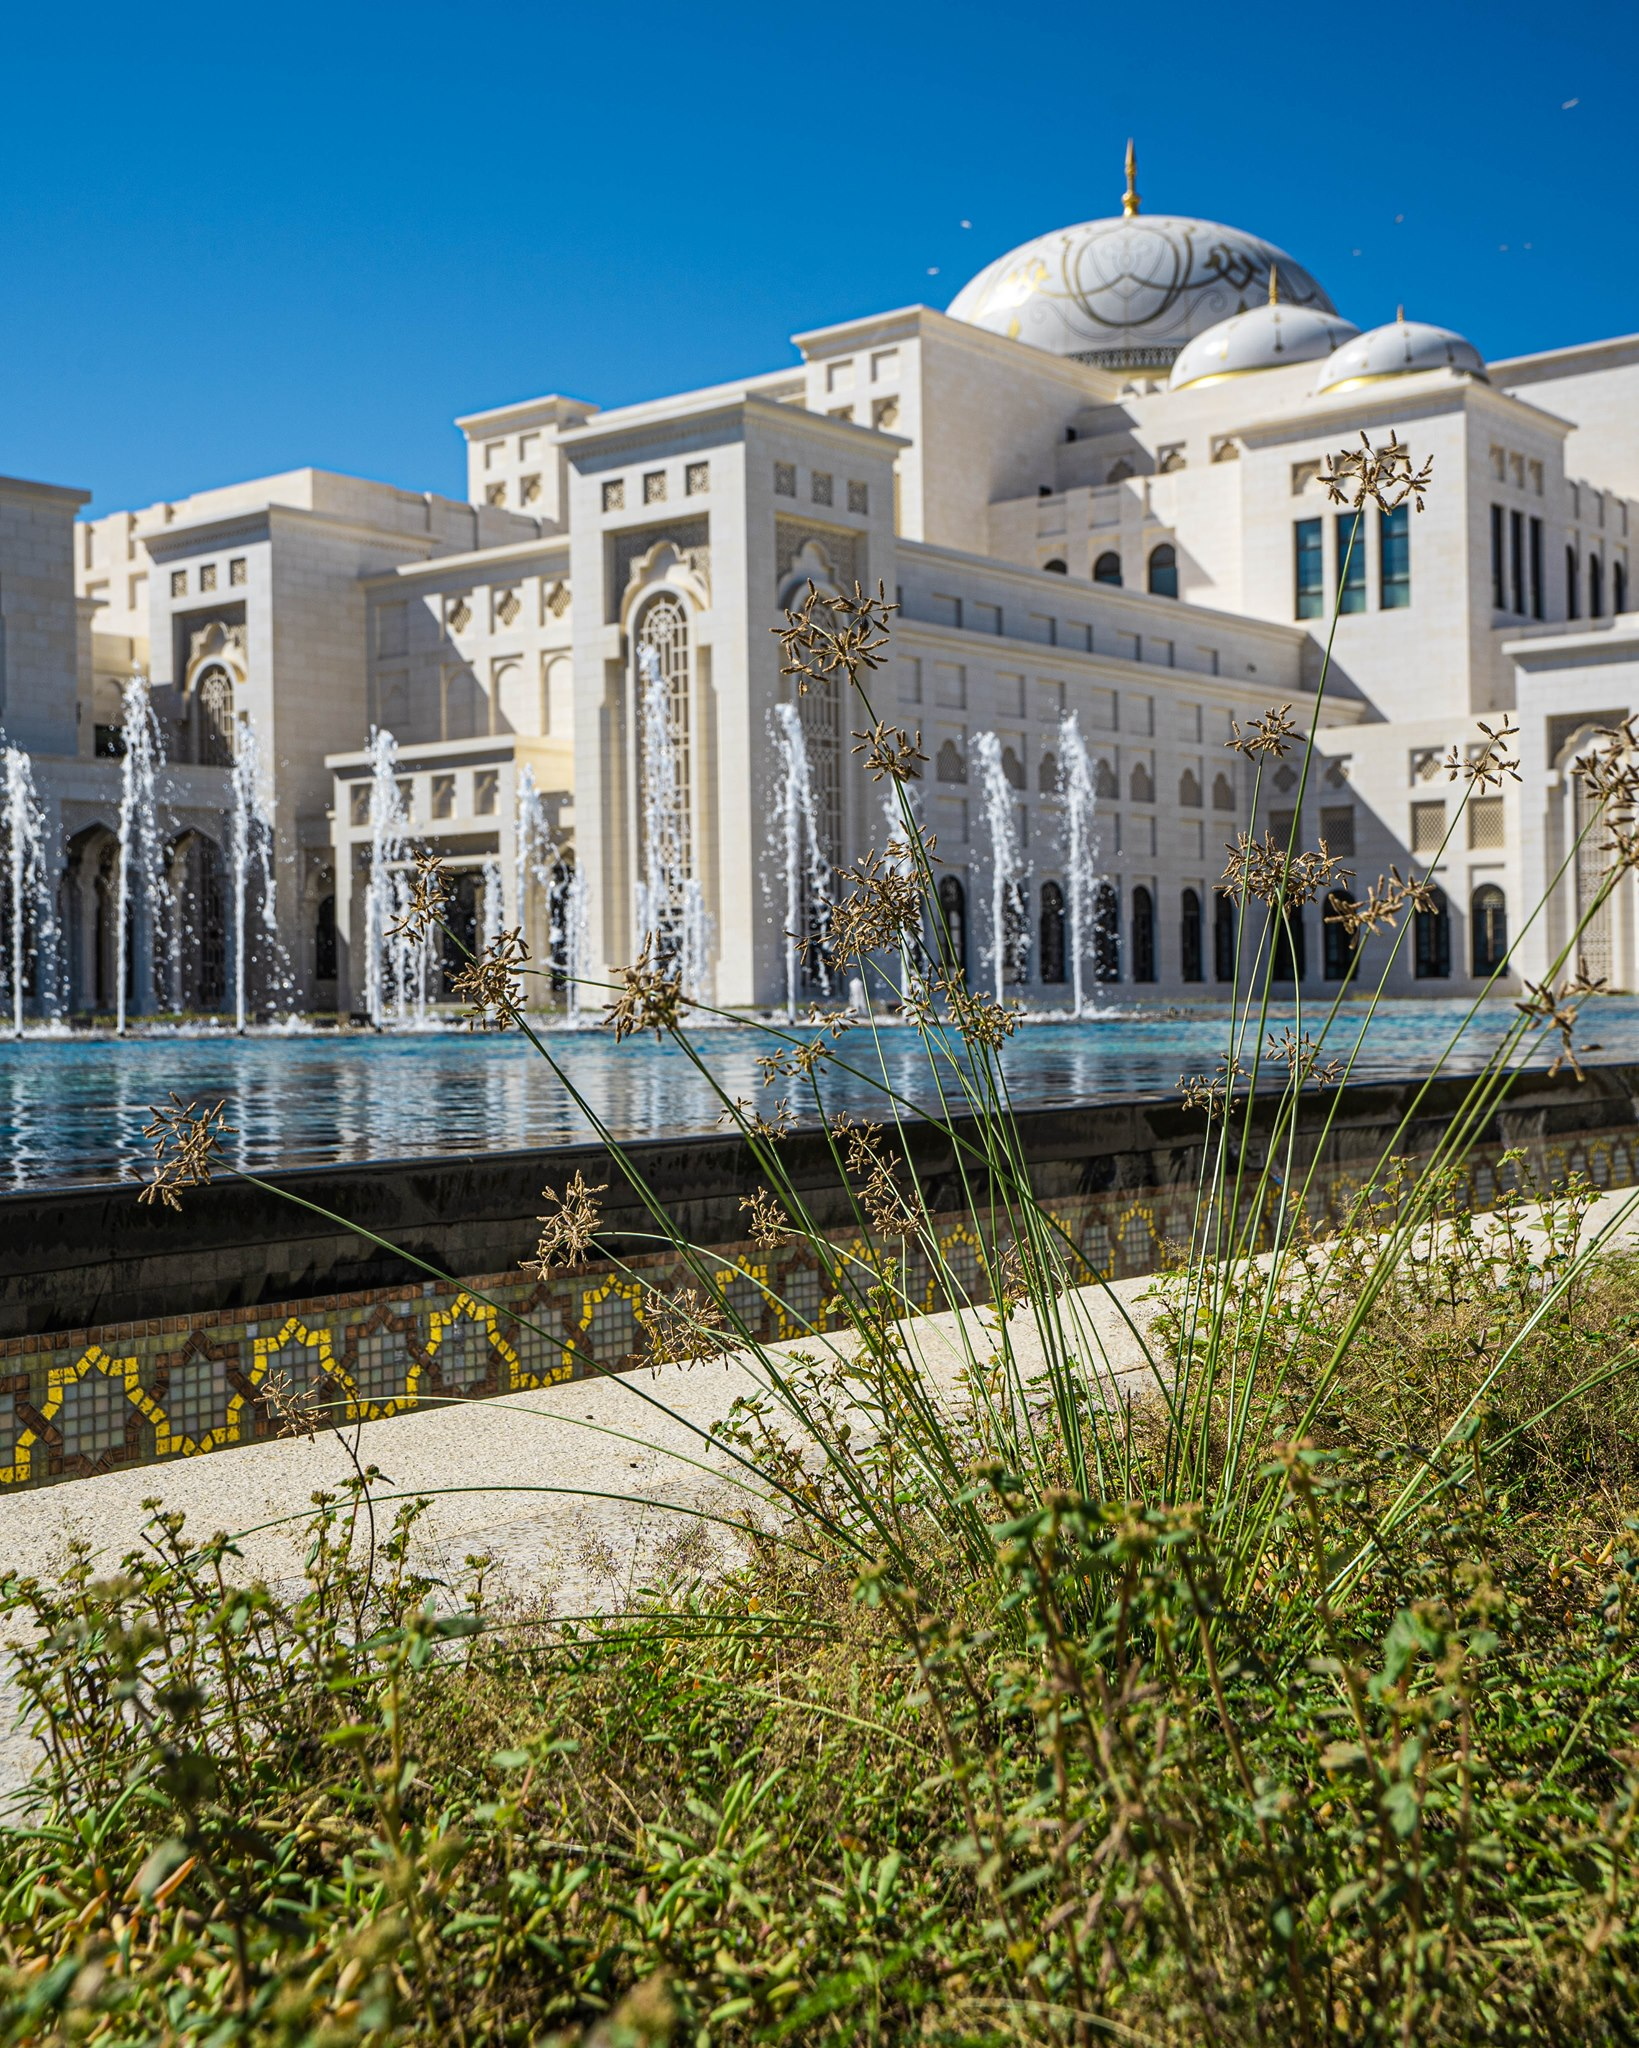 The Presidential Palace of the United Arab Emirates